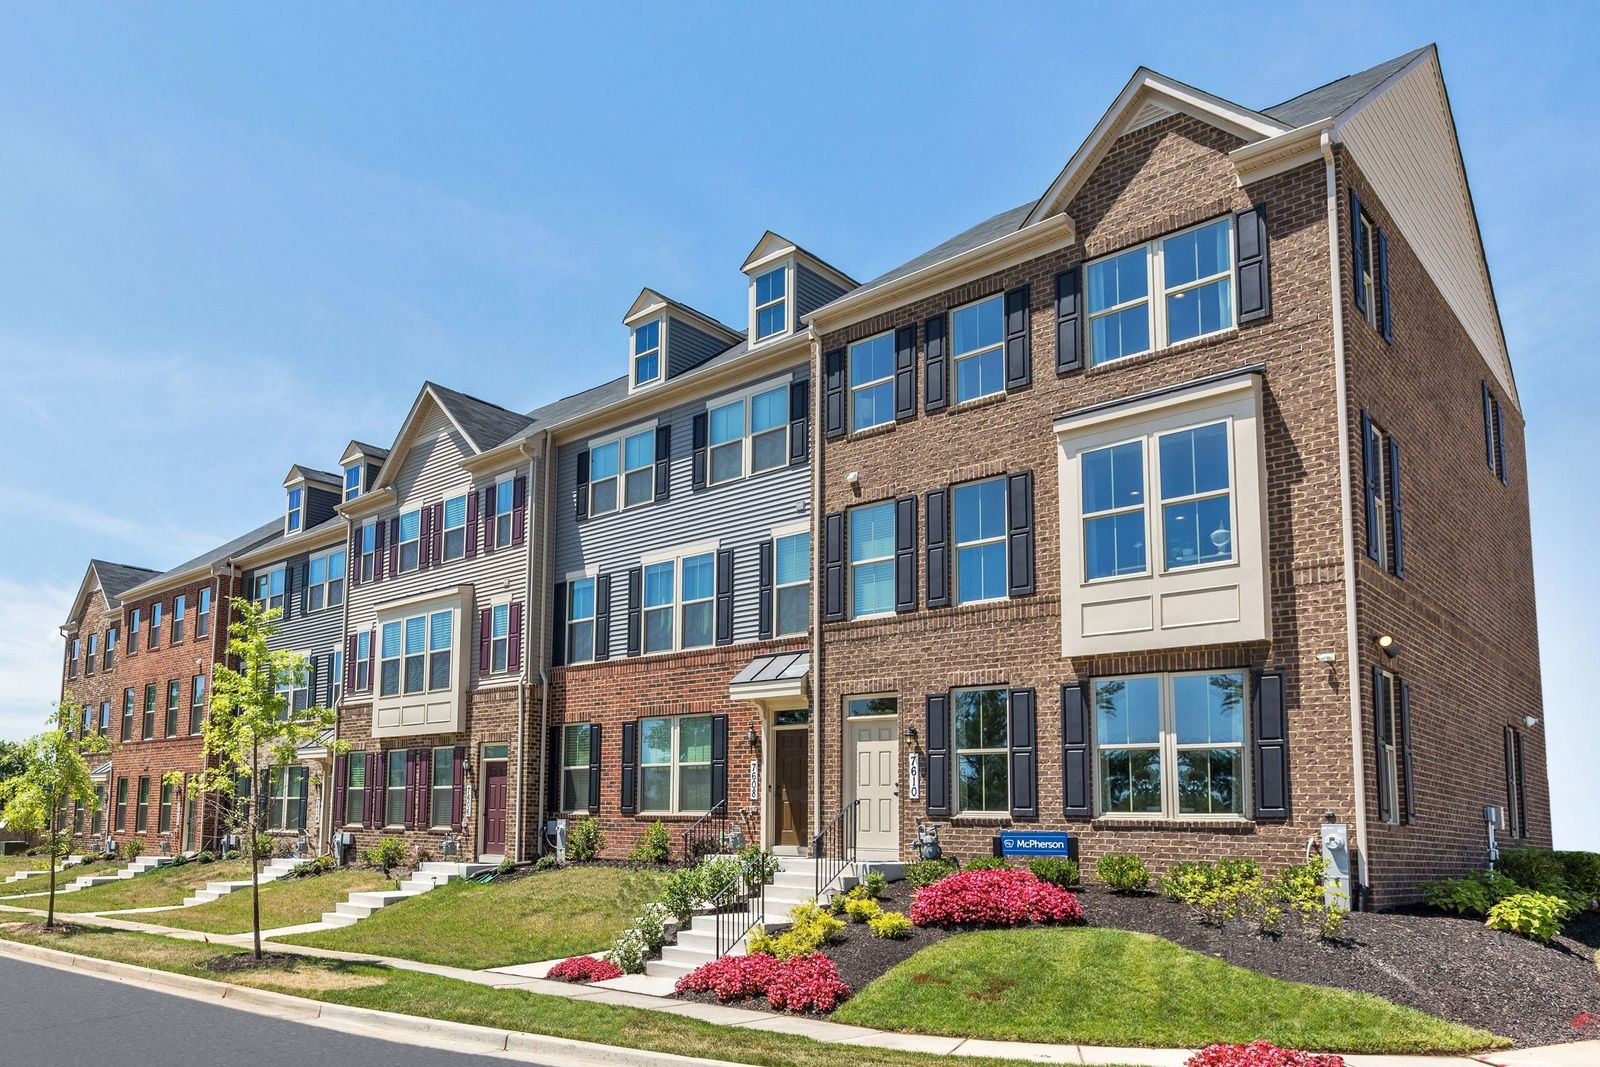 WELCOME TO BLACKBURN, TOWNHOMES FROM THE LOW $500S!